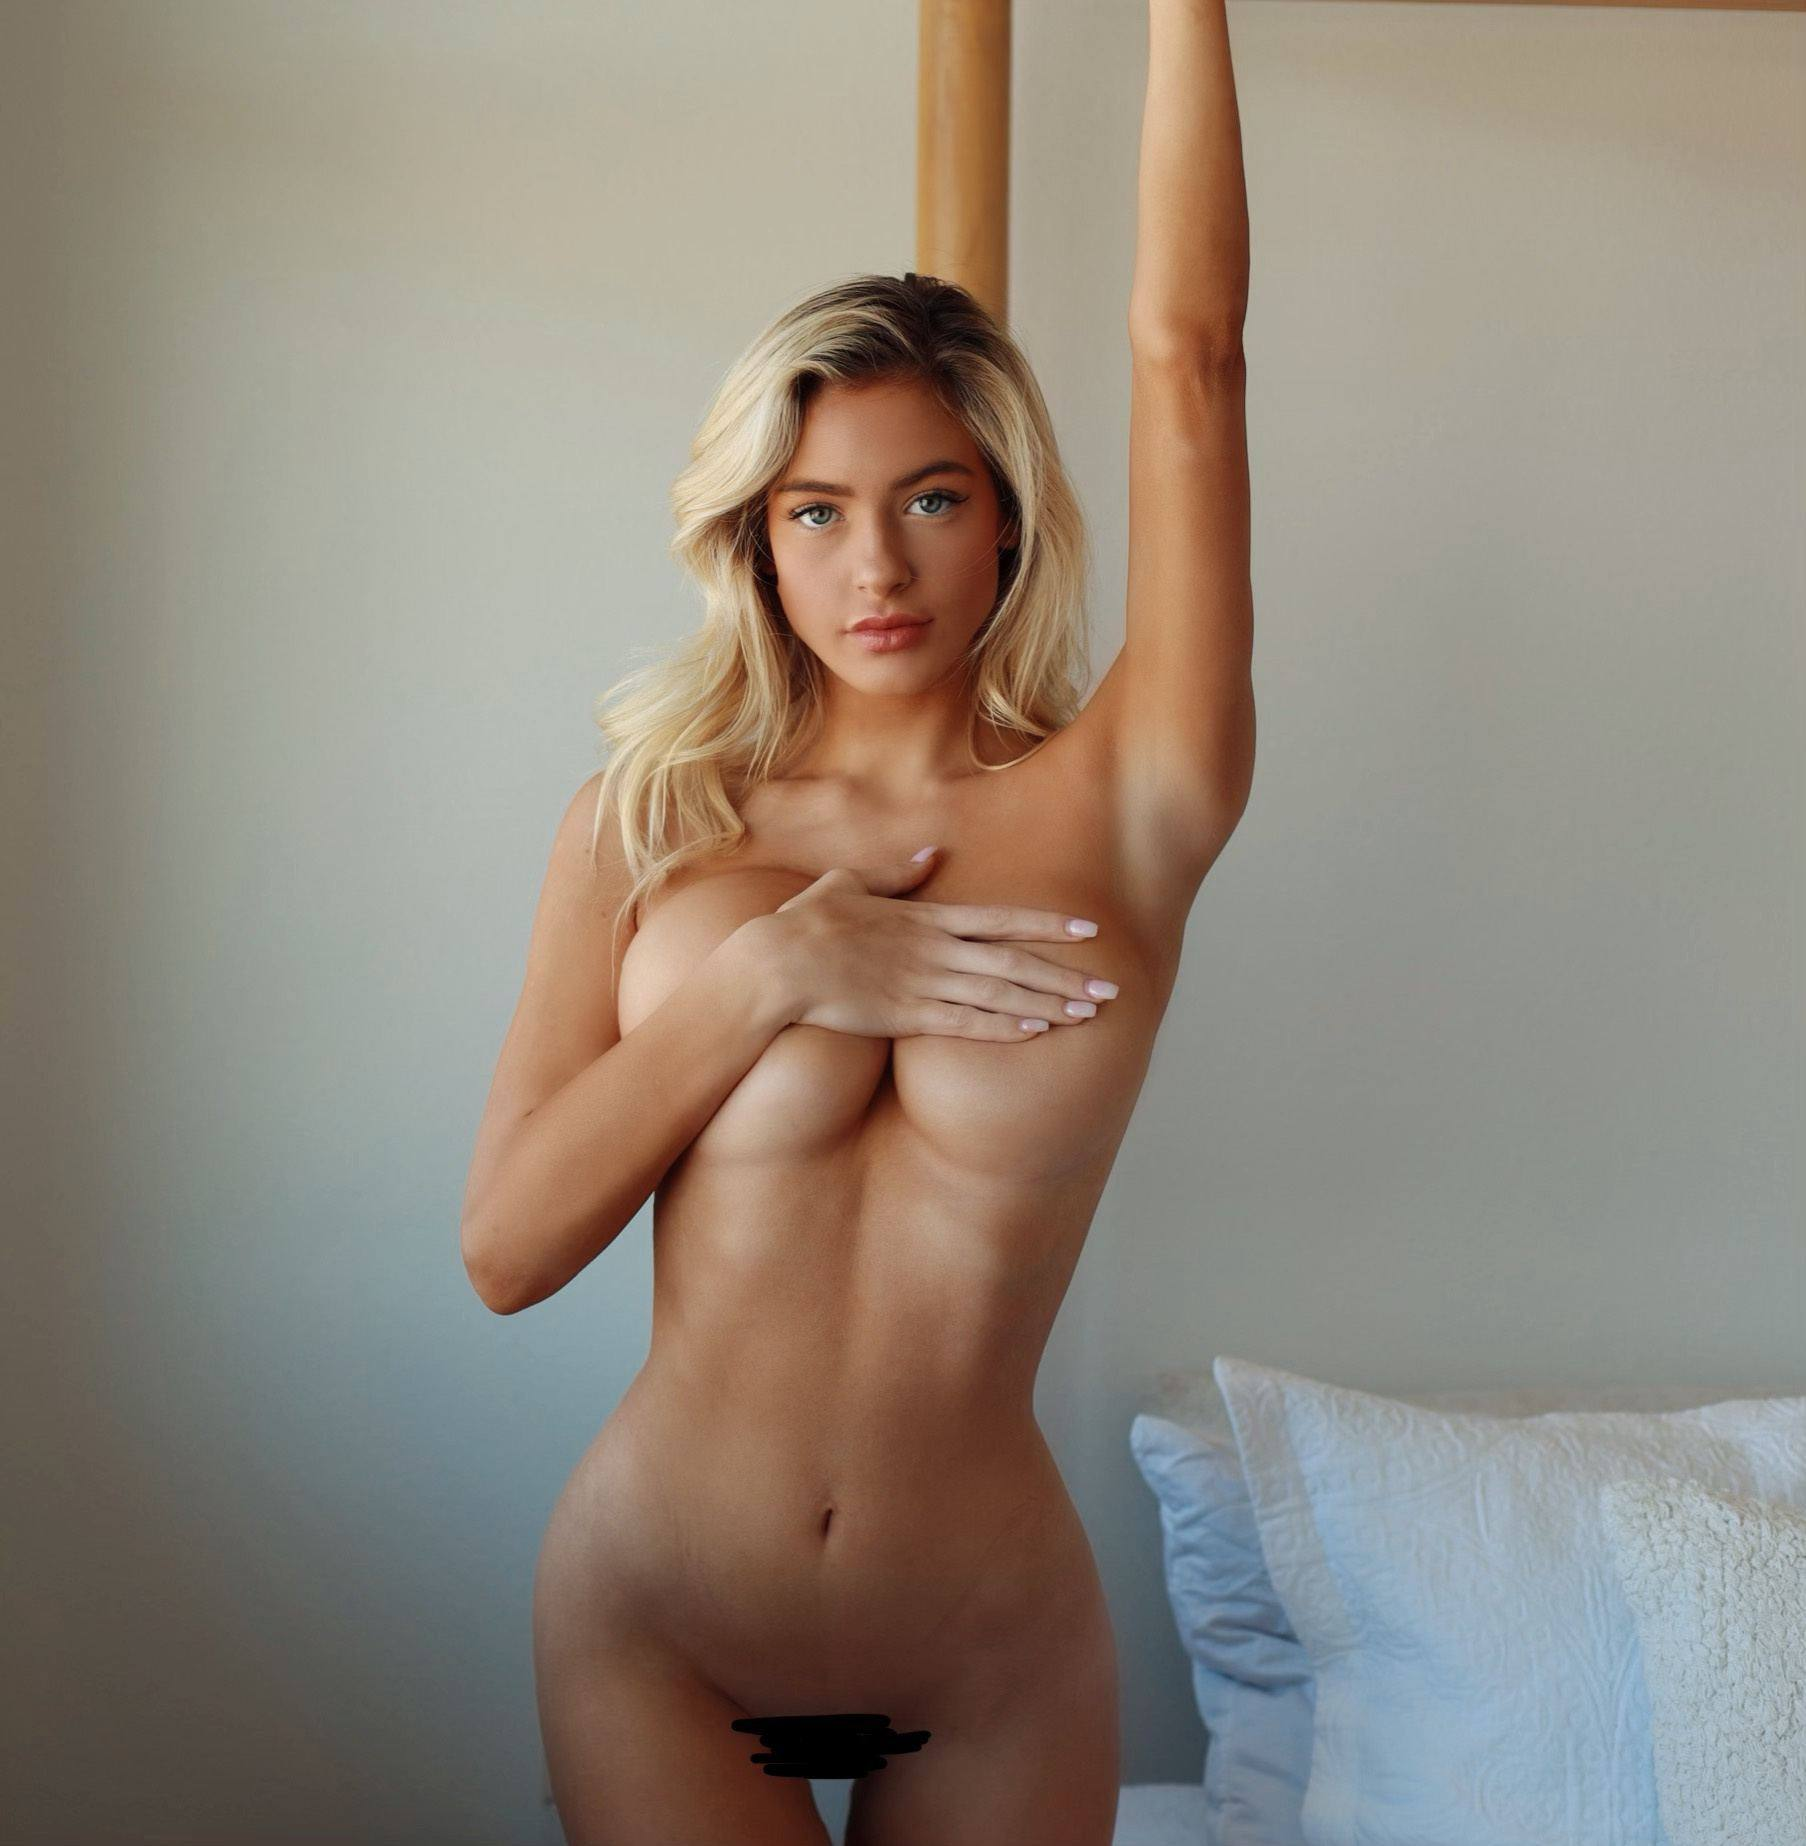 Hannah Palmer – Beautiful Body In Full Frontal Naked Photoshoot (censored) (nsfw) 0008